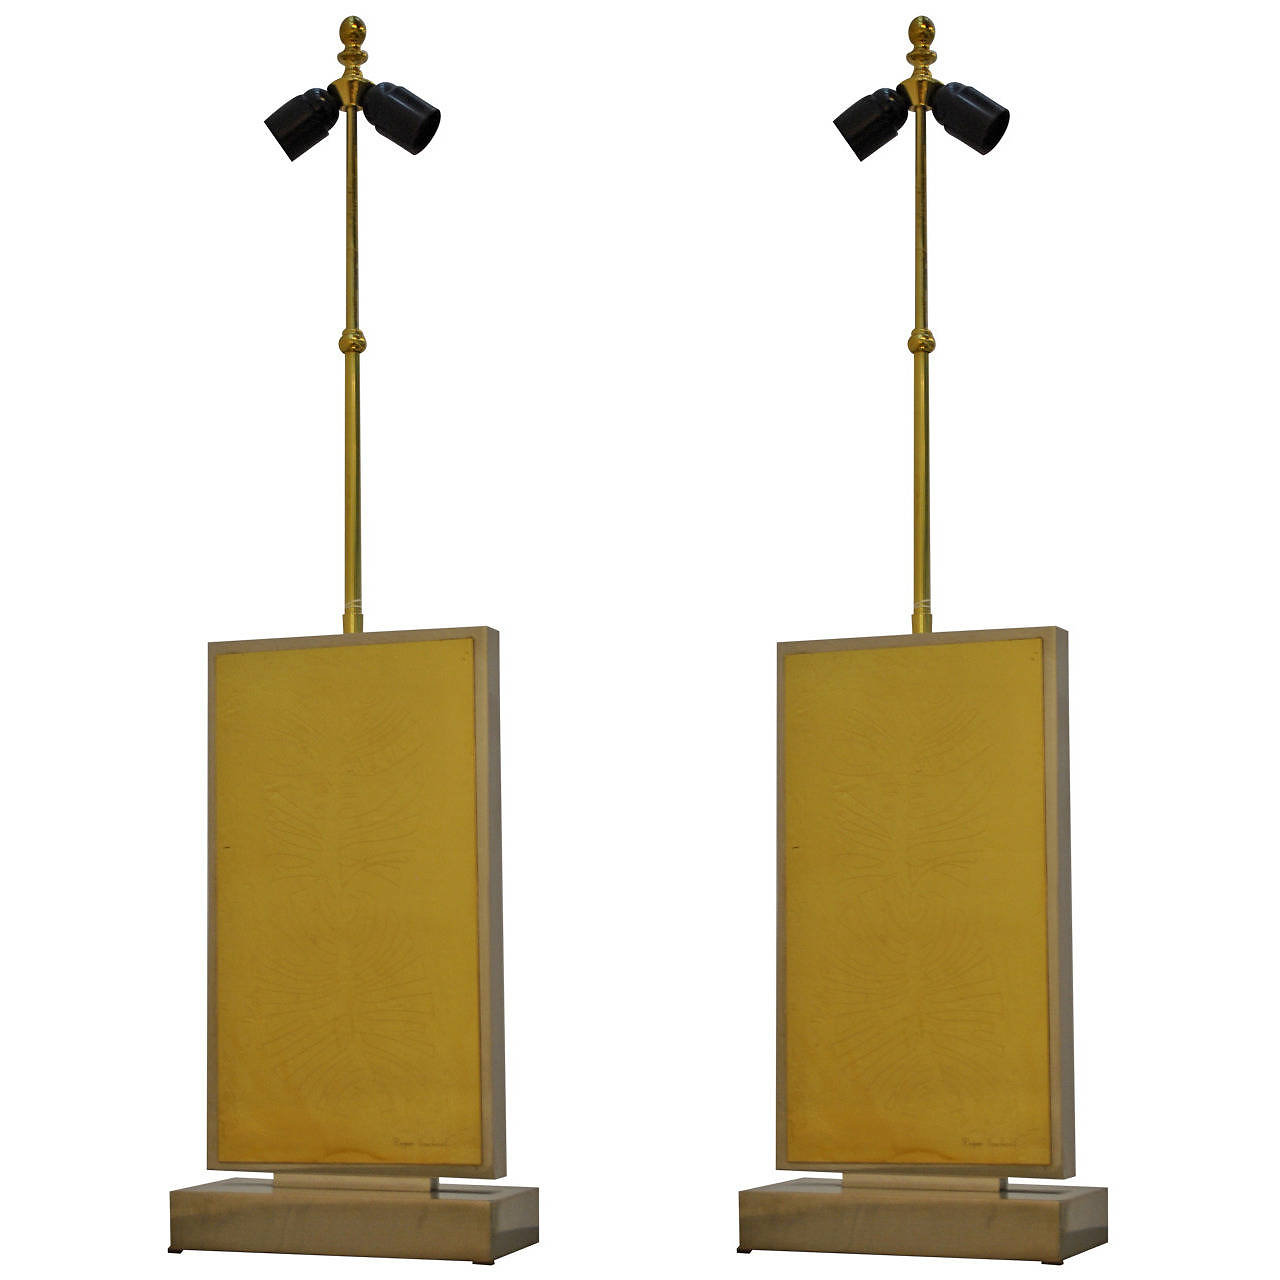 A Very Rare Pair Of Chrome And Brass Table Lamps By Roger Vanhevel With  Stylized Leaf Pattern. Signed. Come Without Shades. A Perfect Large Pair Of  Lamps ...